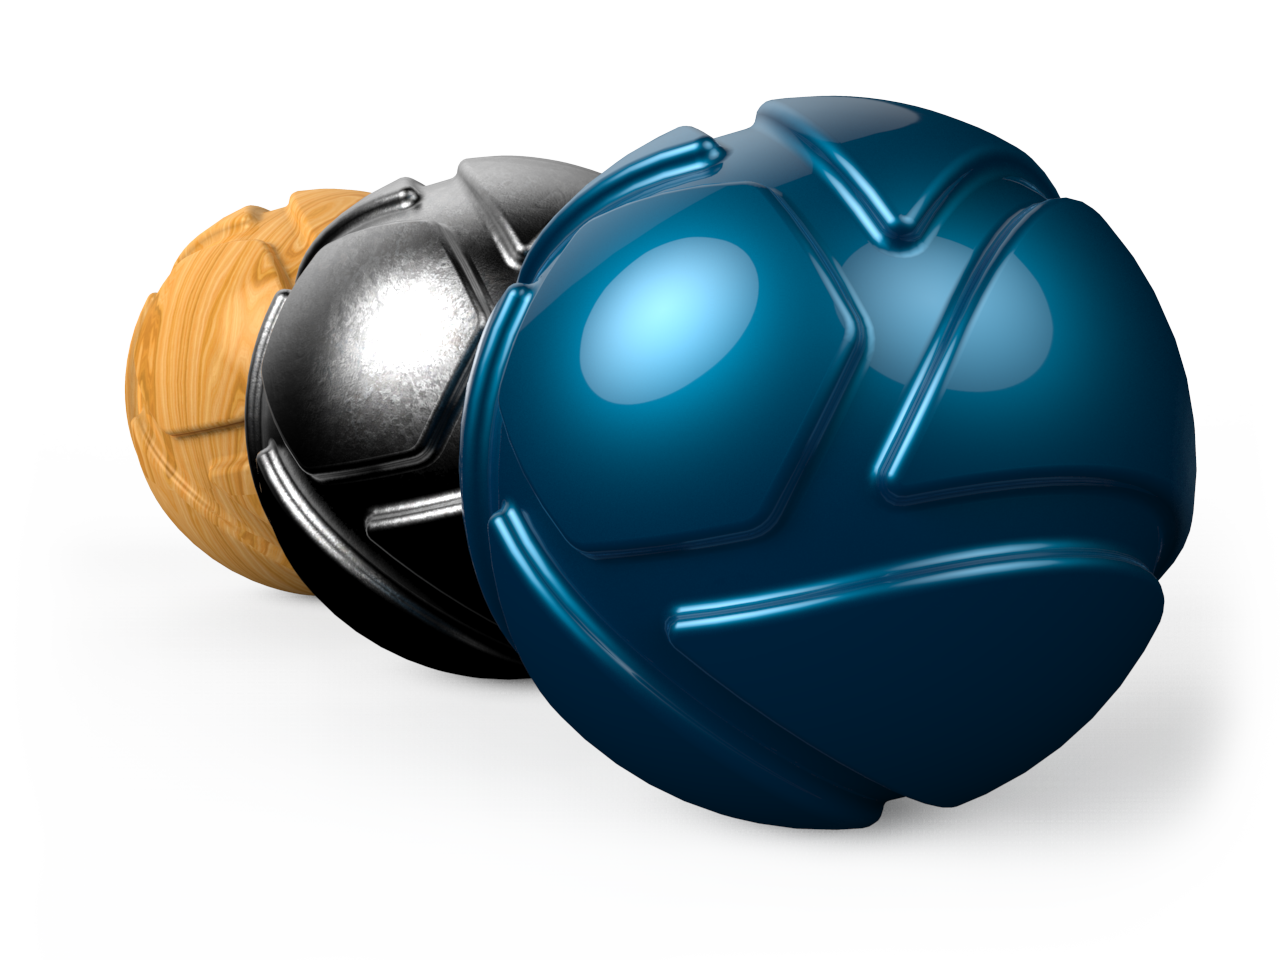 KeyShot-5-Material-Ball